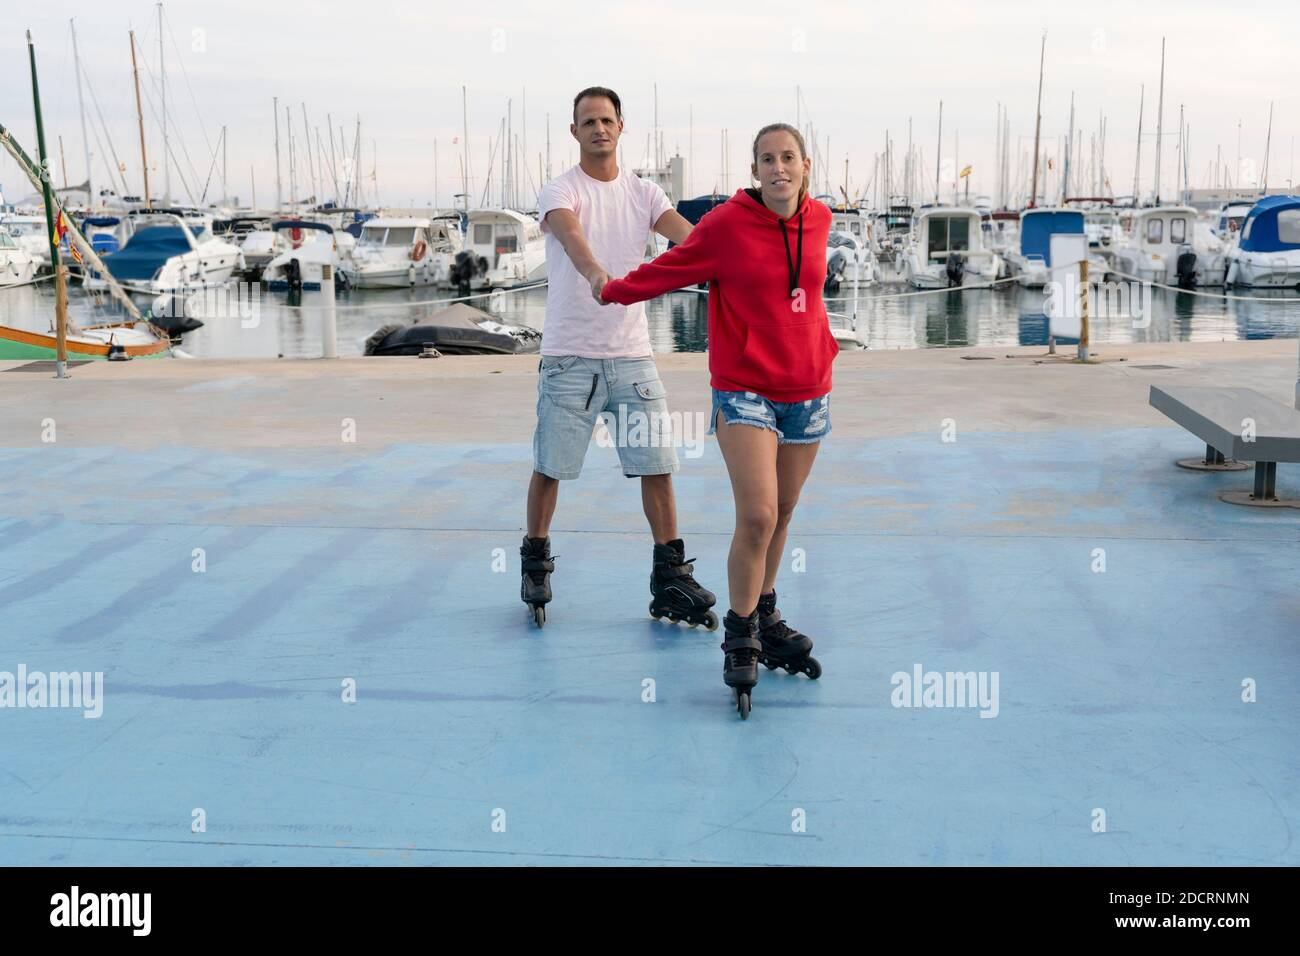 Young happy couple roller skating in skate park next to the beautiful port in summer.Friendship sport and fitness lifestyle concept. Stock Photo